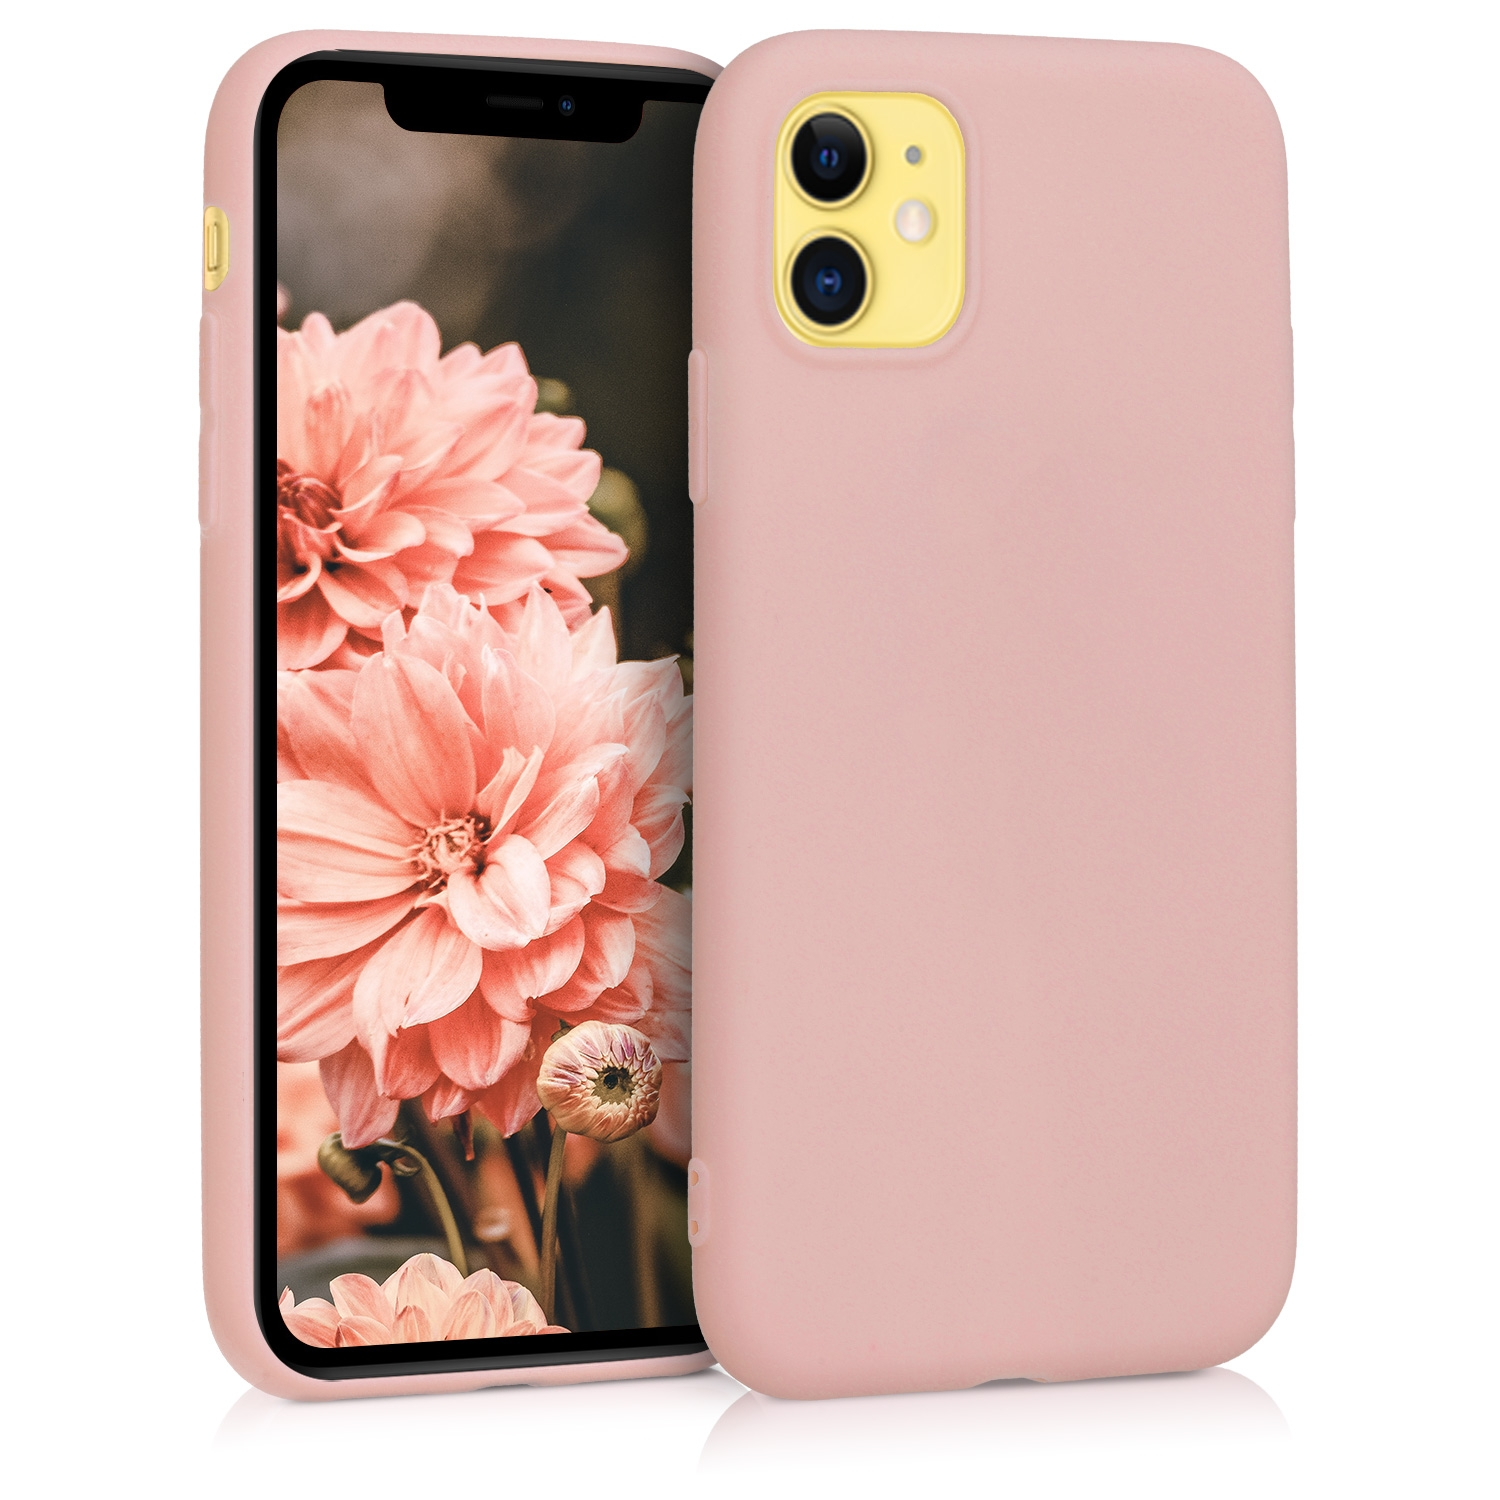 KW Θήκη Σιλικόνης Apple iPhone 11 - Rose Gold Matte (49787.89)